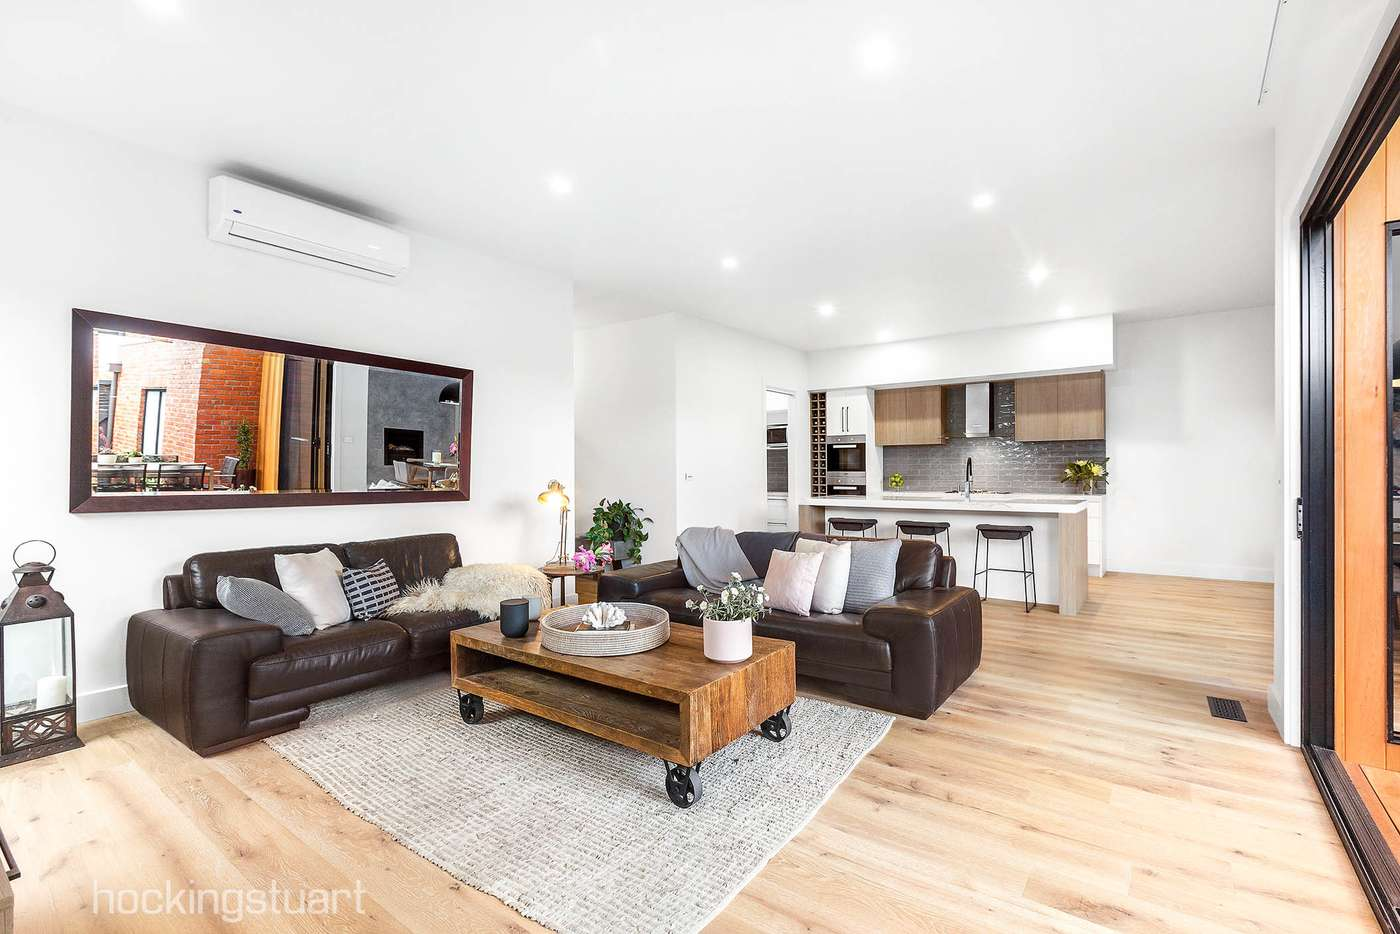 Fifth view of Homely house listing, 10 Bayview Street, Elsternwick VIC 3185